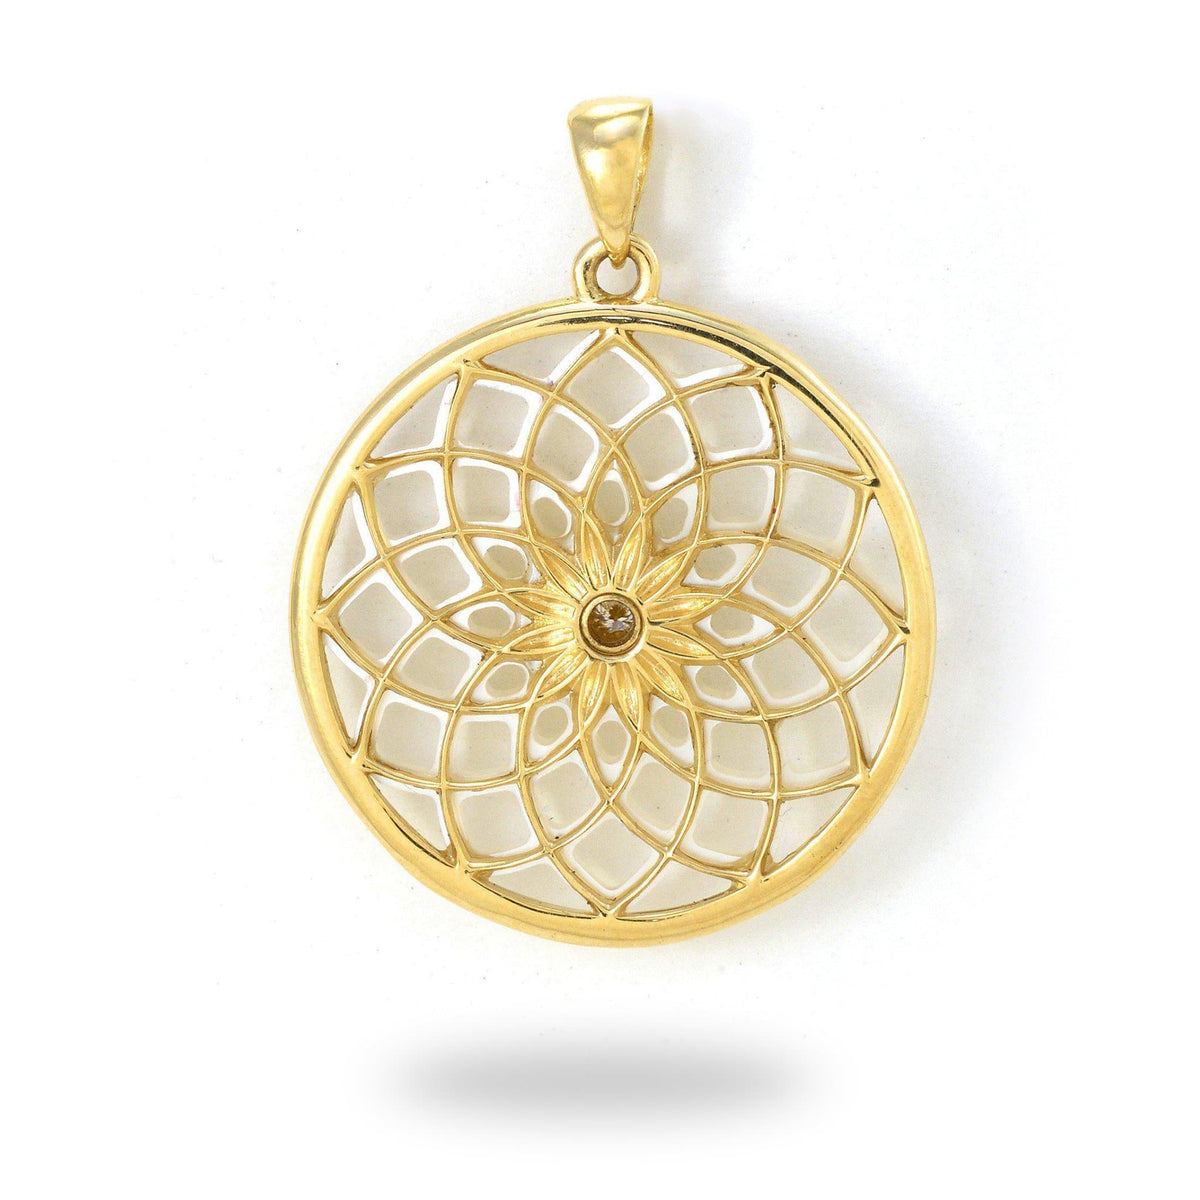 Protea Mother of Pearl Pendant with Diamond in 14K Yellow Gold - 27mm